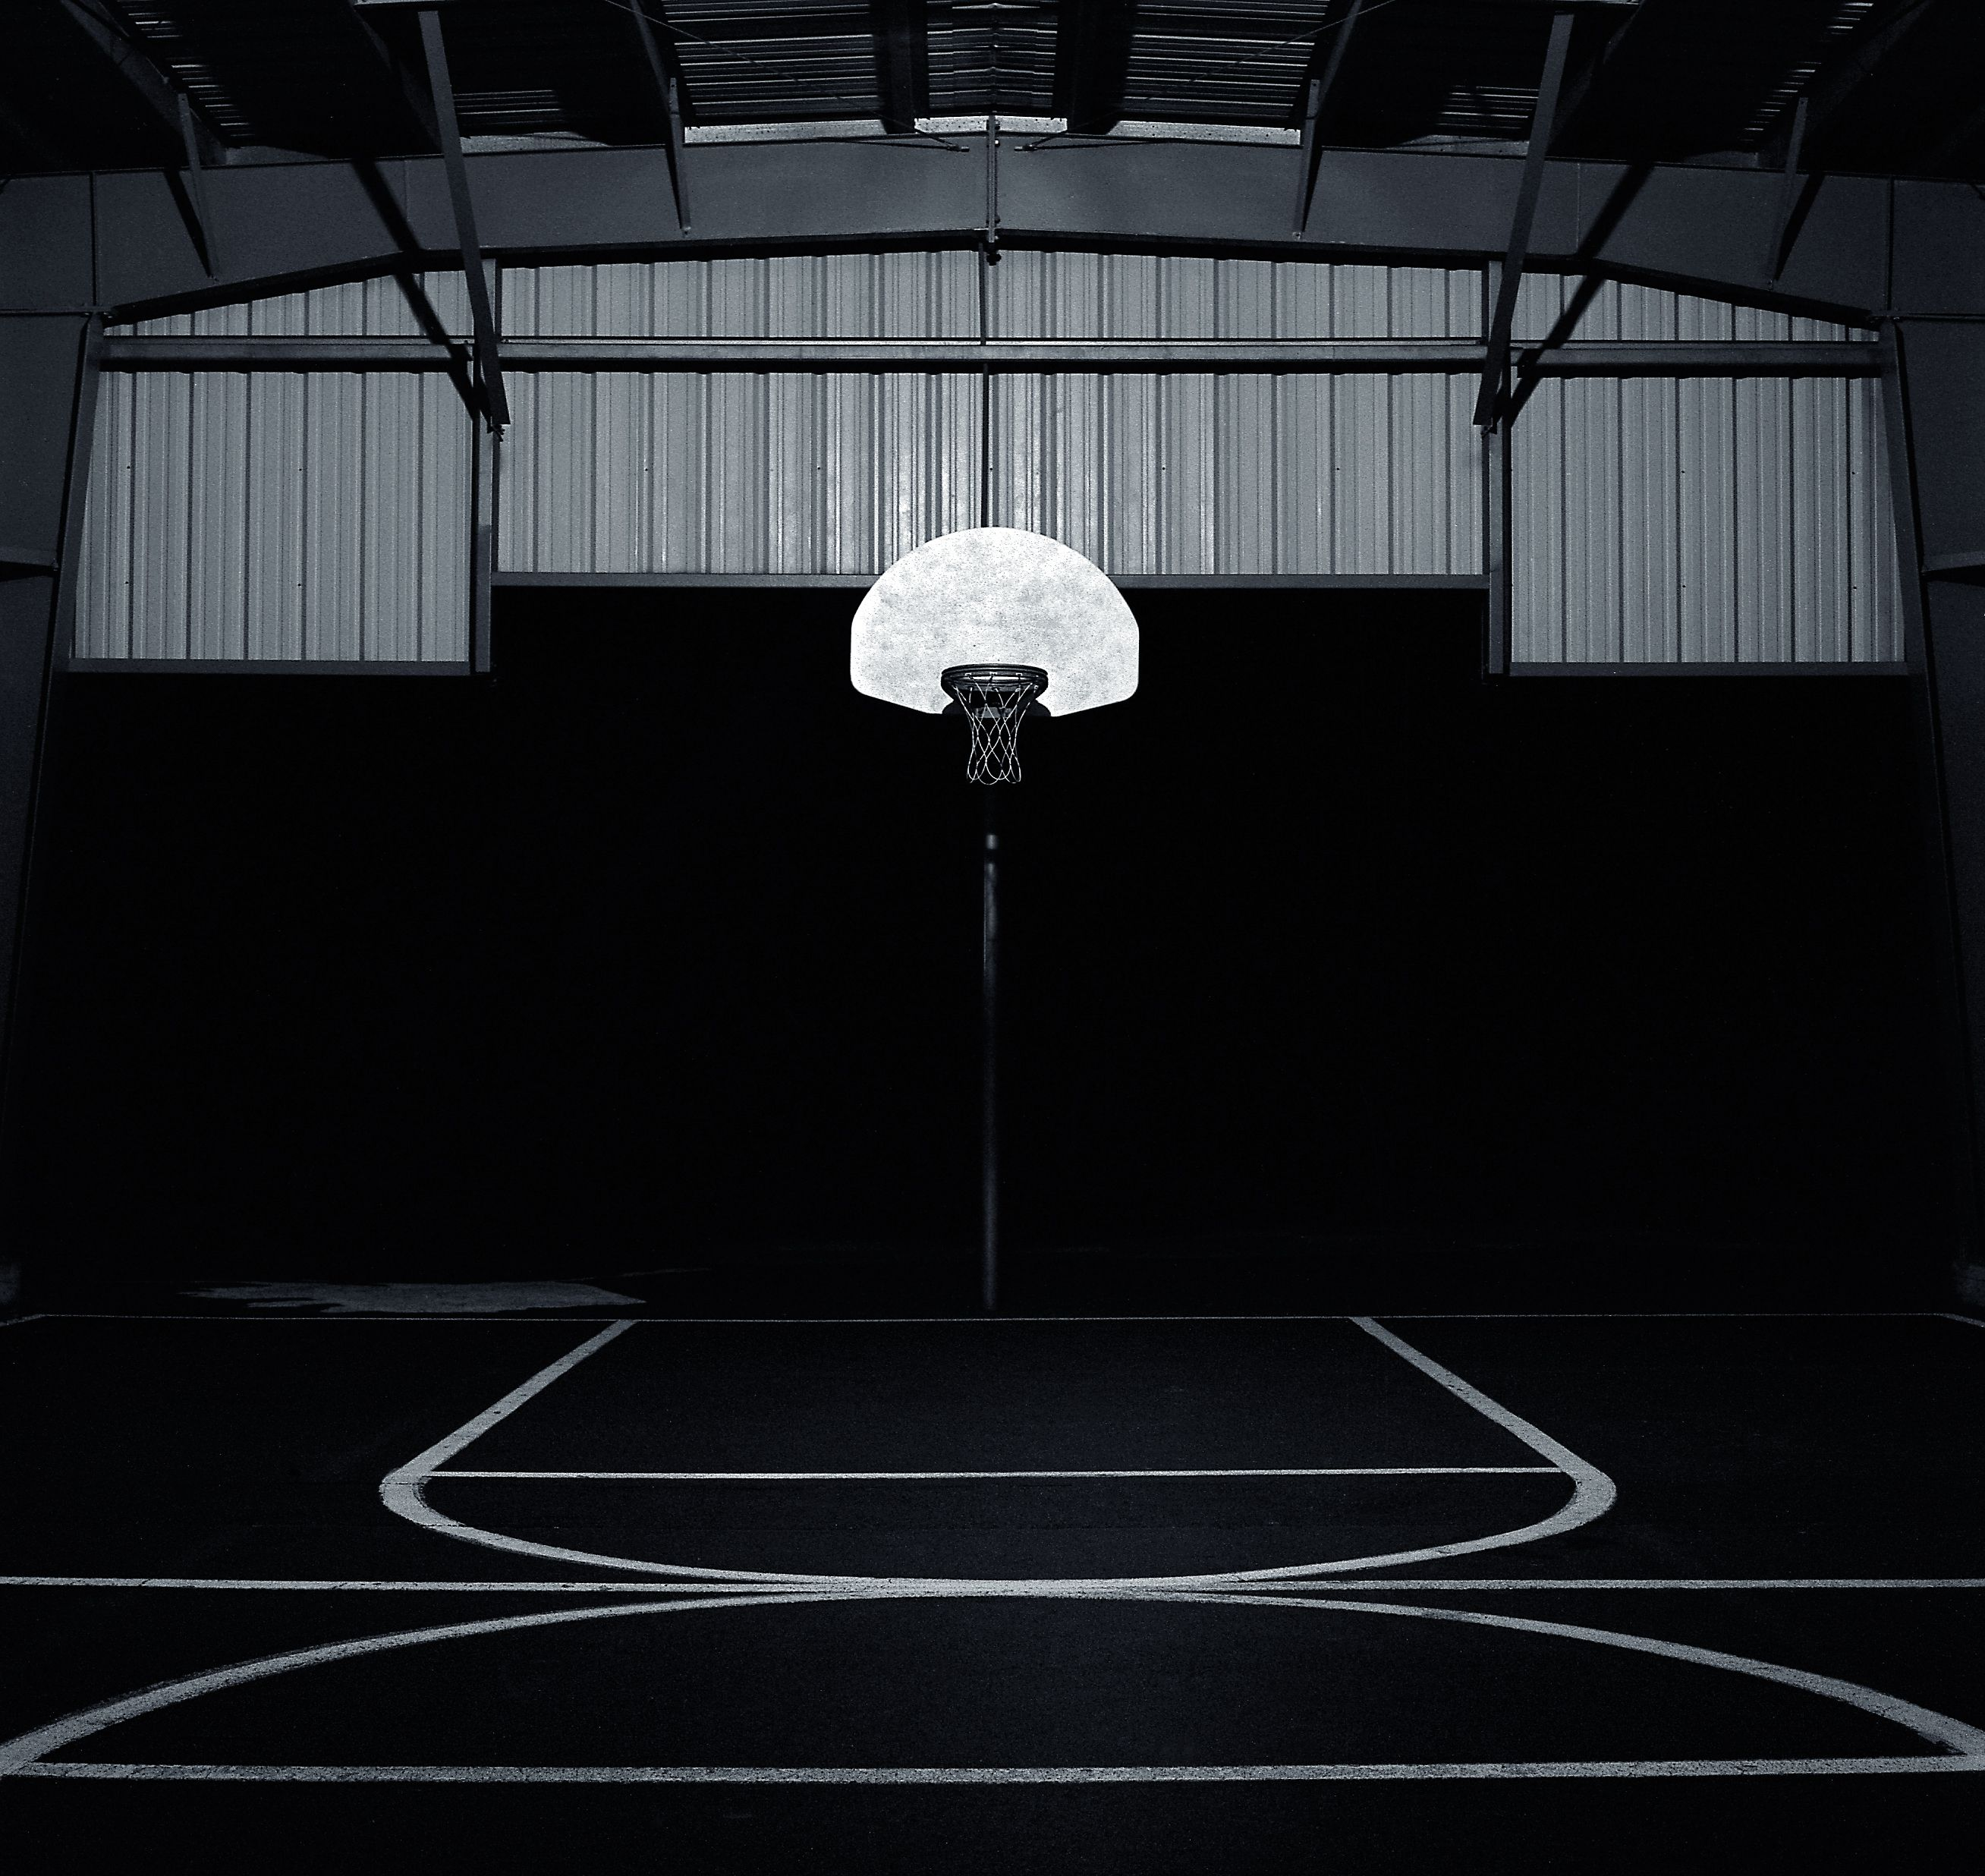 Basketball Court Black And White Photography Images Pictures Basketball Wallpaper Basketball Photography Basketball Photos